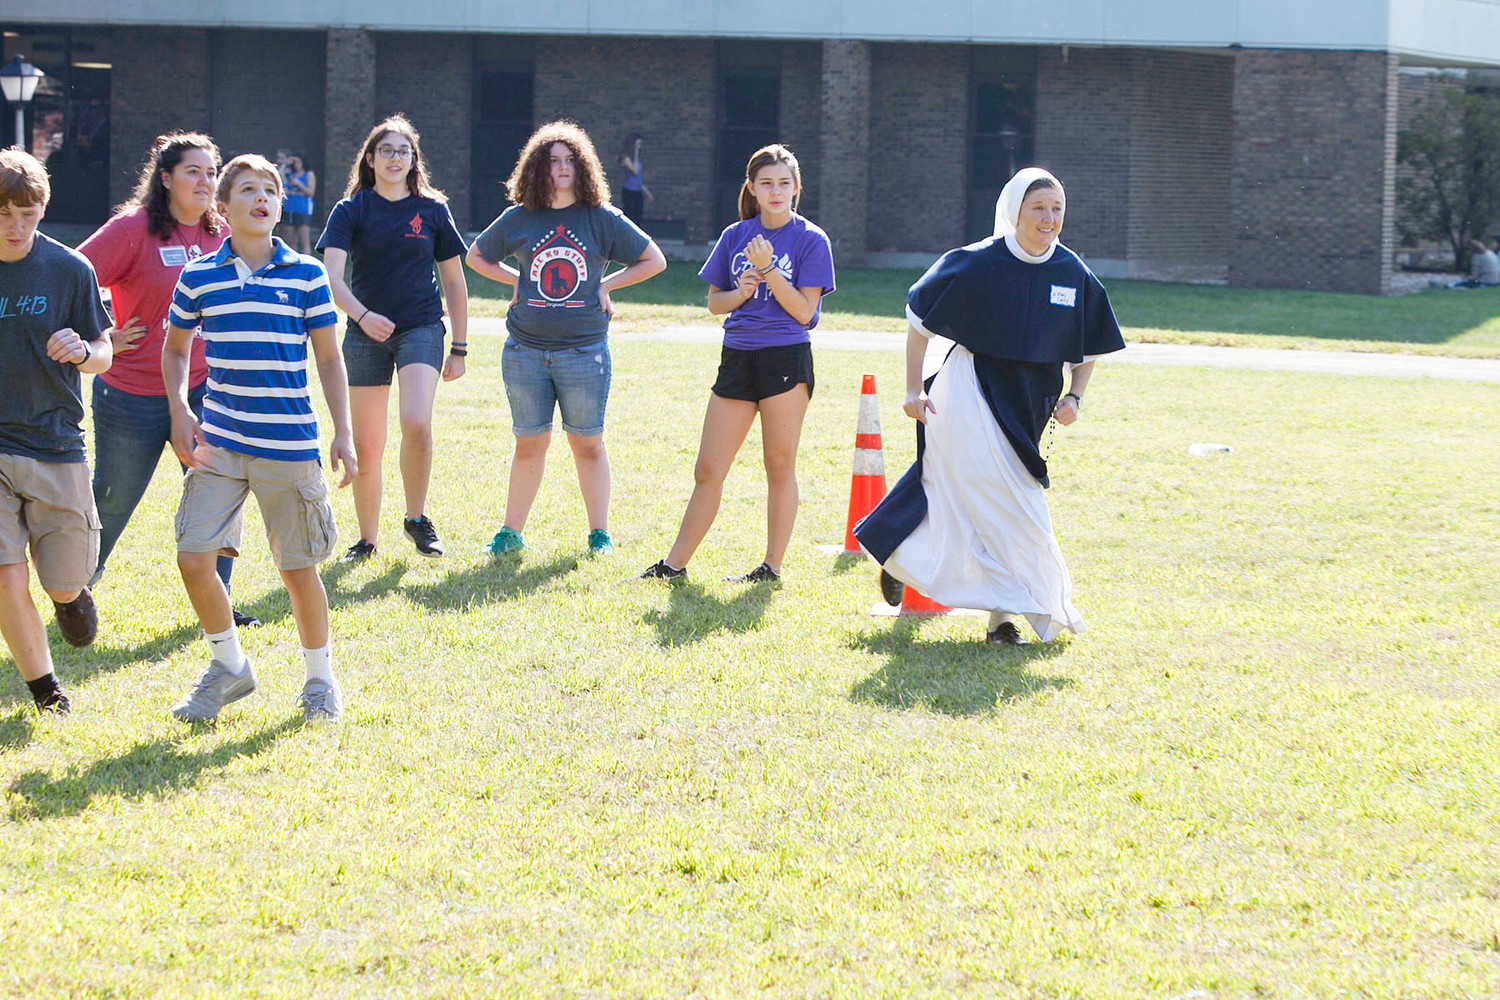 Sister Mary Casey, S.V., joins teens for a game of Frisbee football.